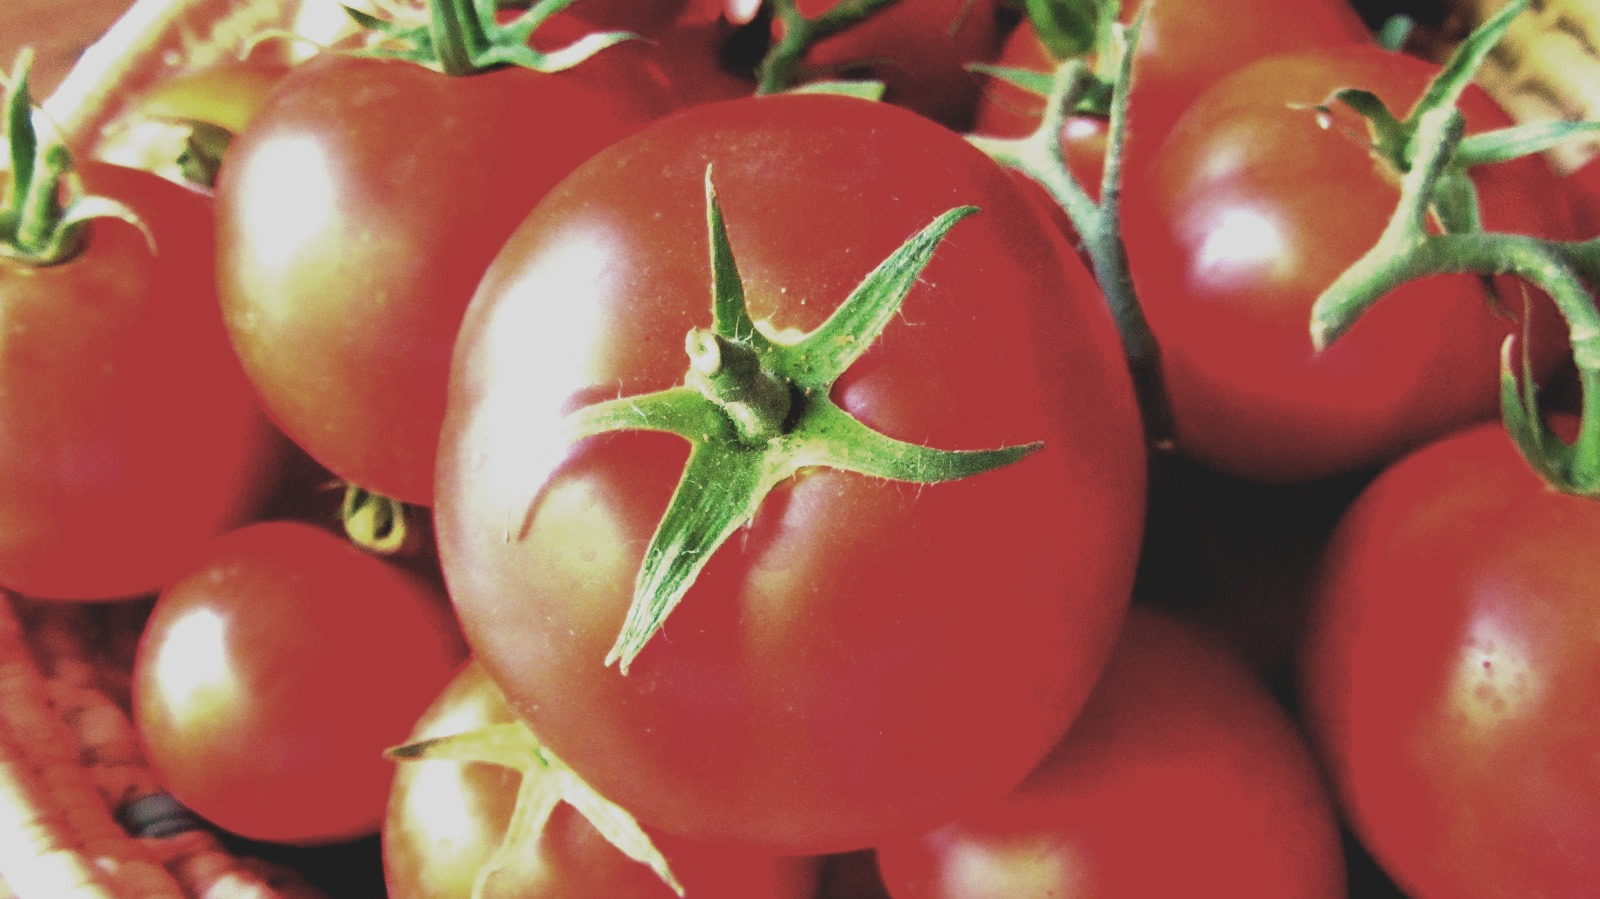 There's no question that sunscreen should be your first line of defense against the blazing summer sun. But eating tomatoes could give you a little extra protection: consuming more lycopene—the carotenoid that makes tomatoes red—may protect your skin from sunburn.